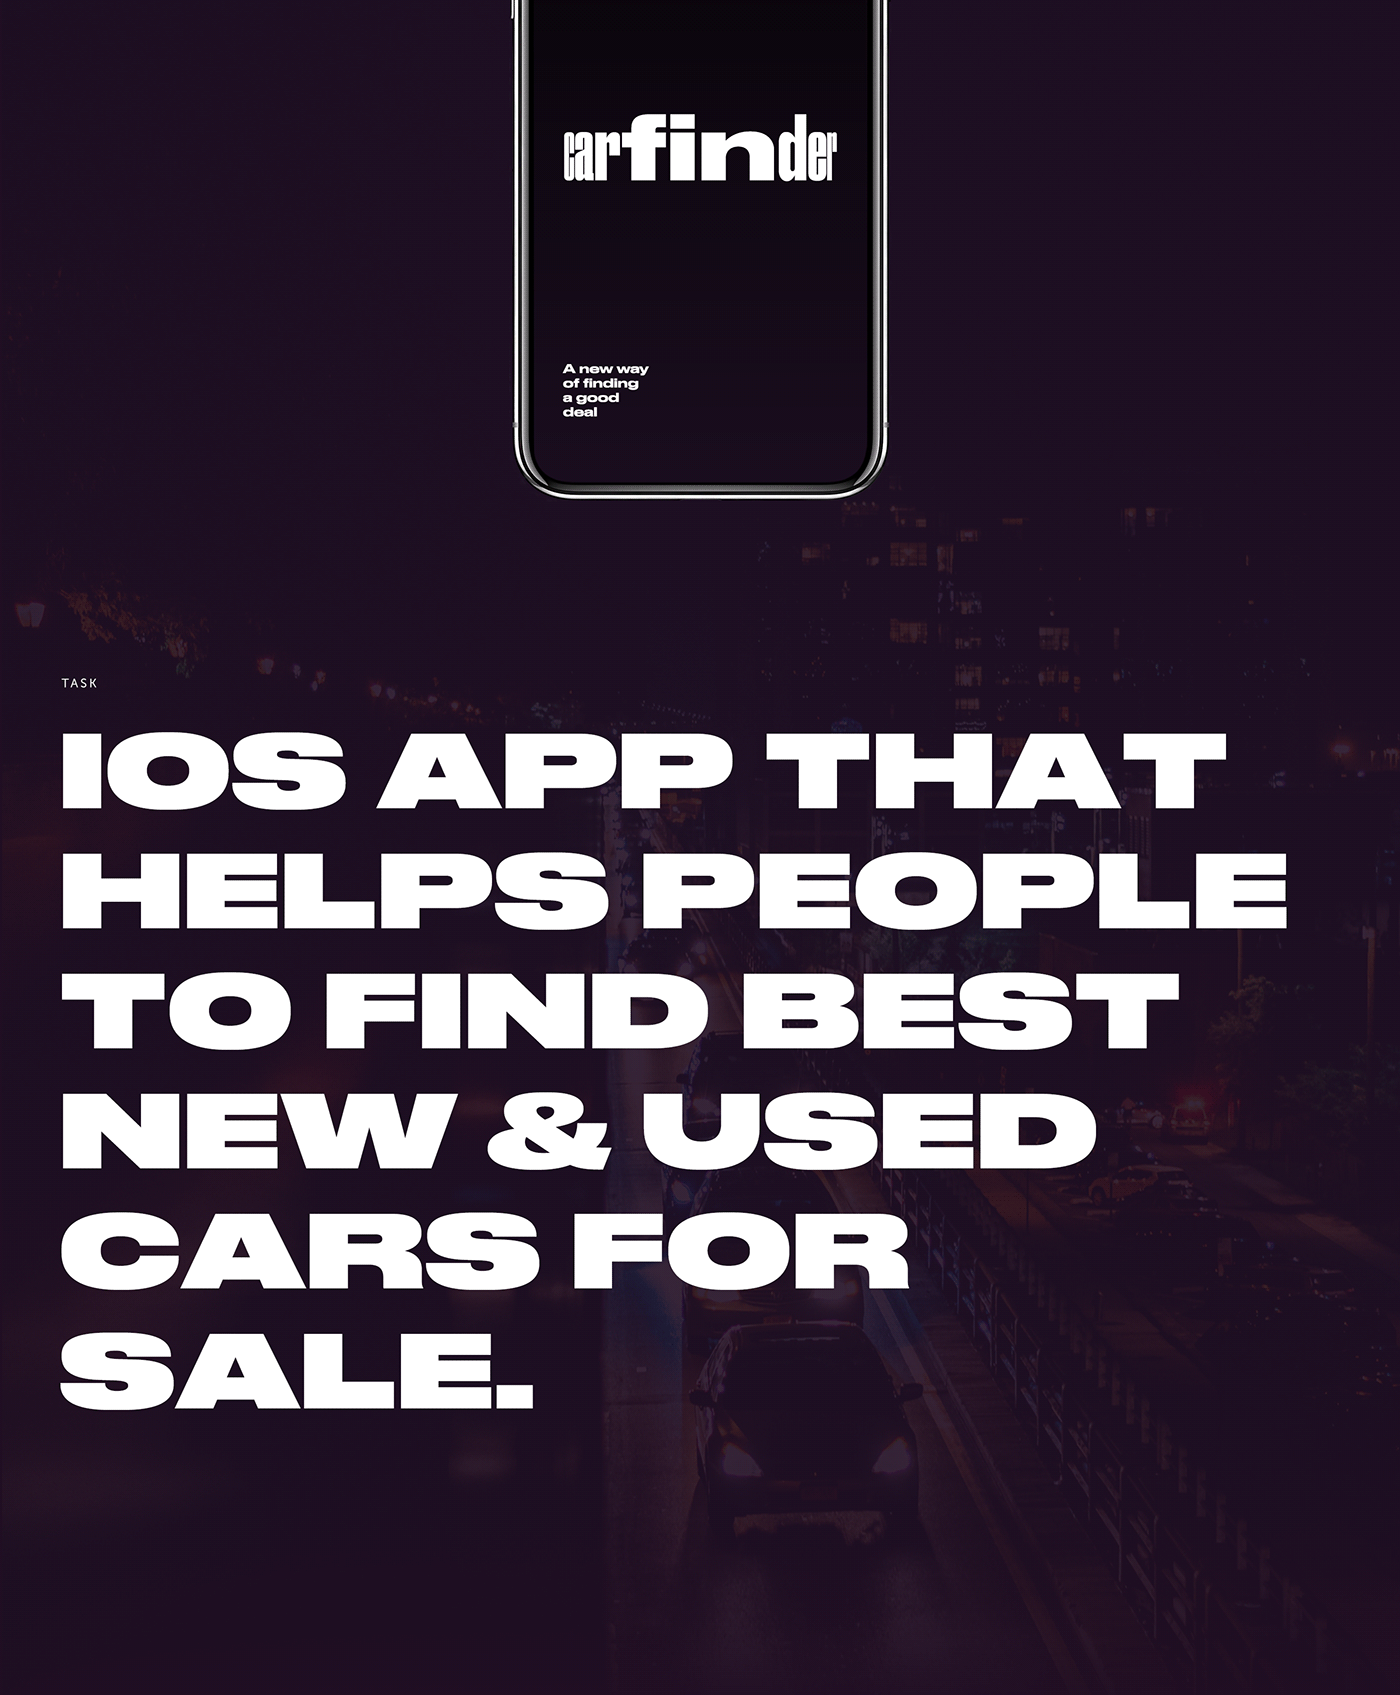 UI Design and Interactions for Carfinder Mobile App